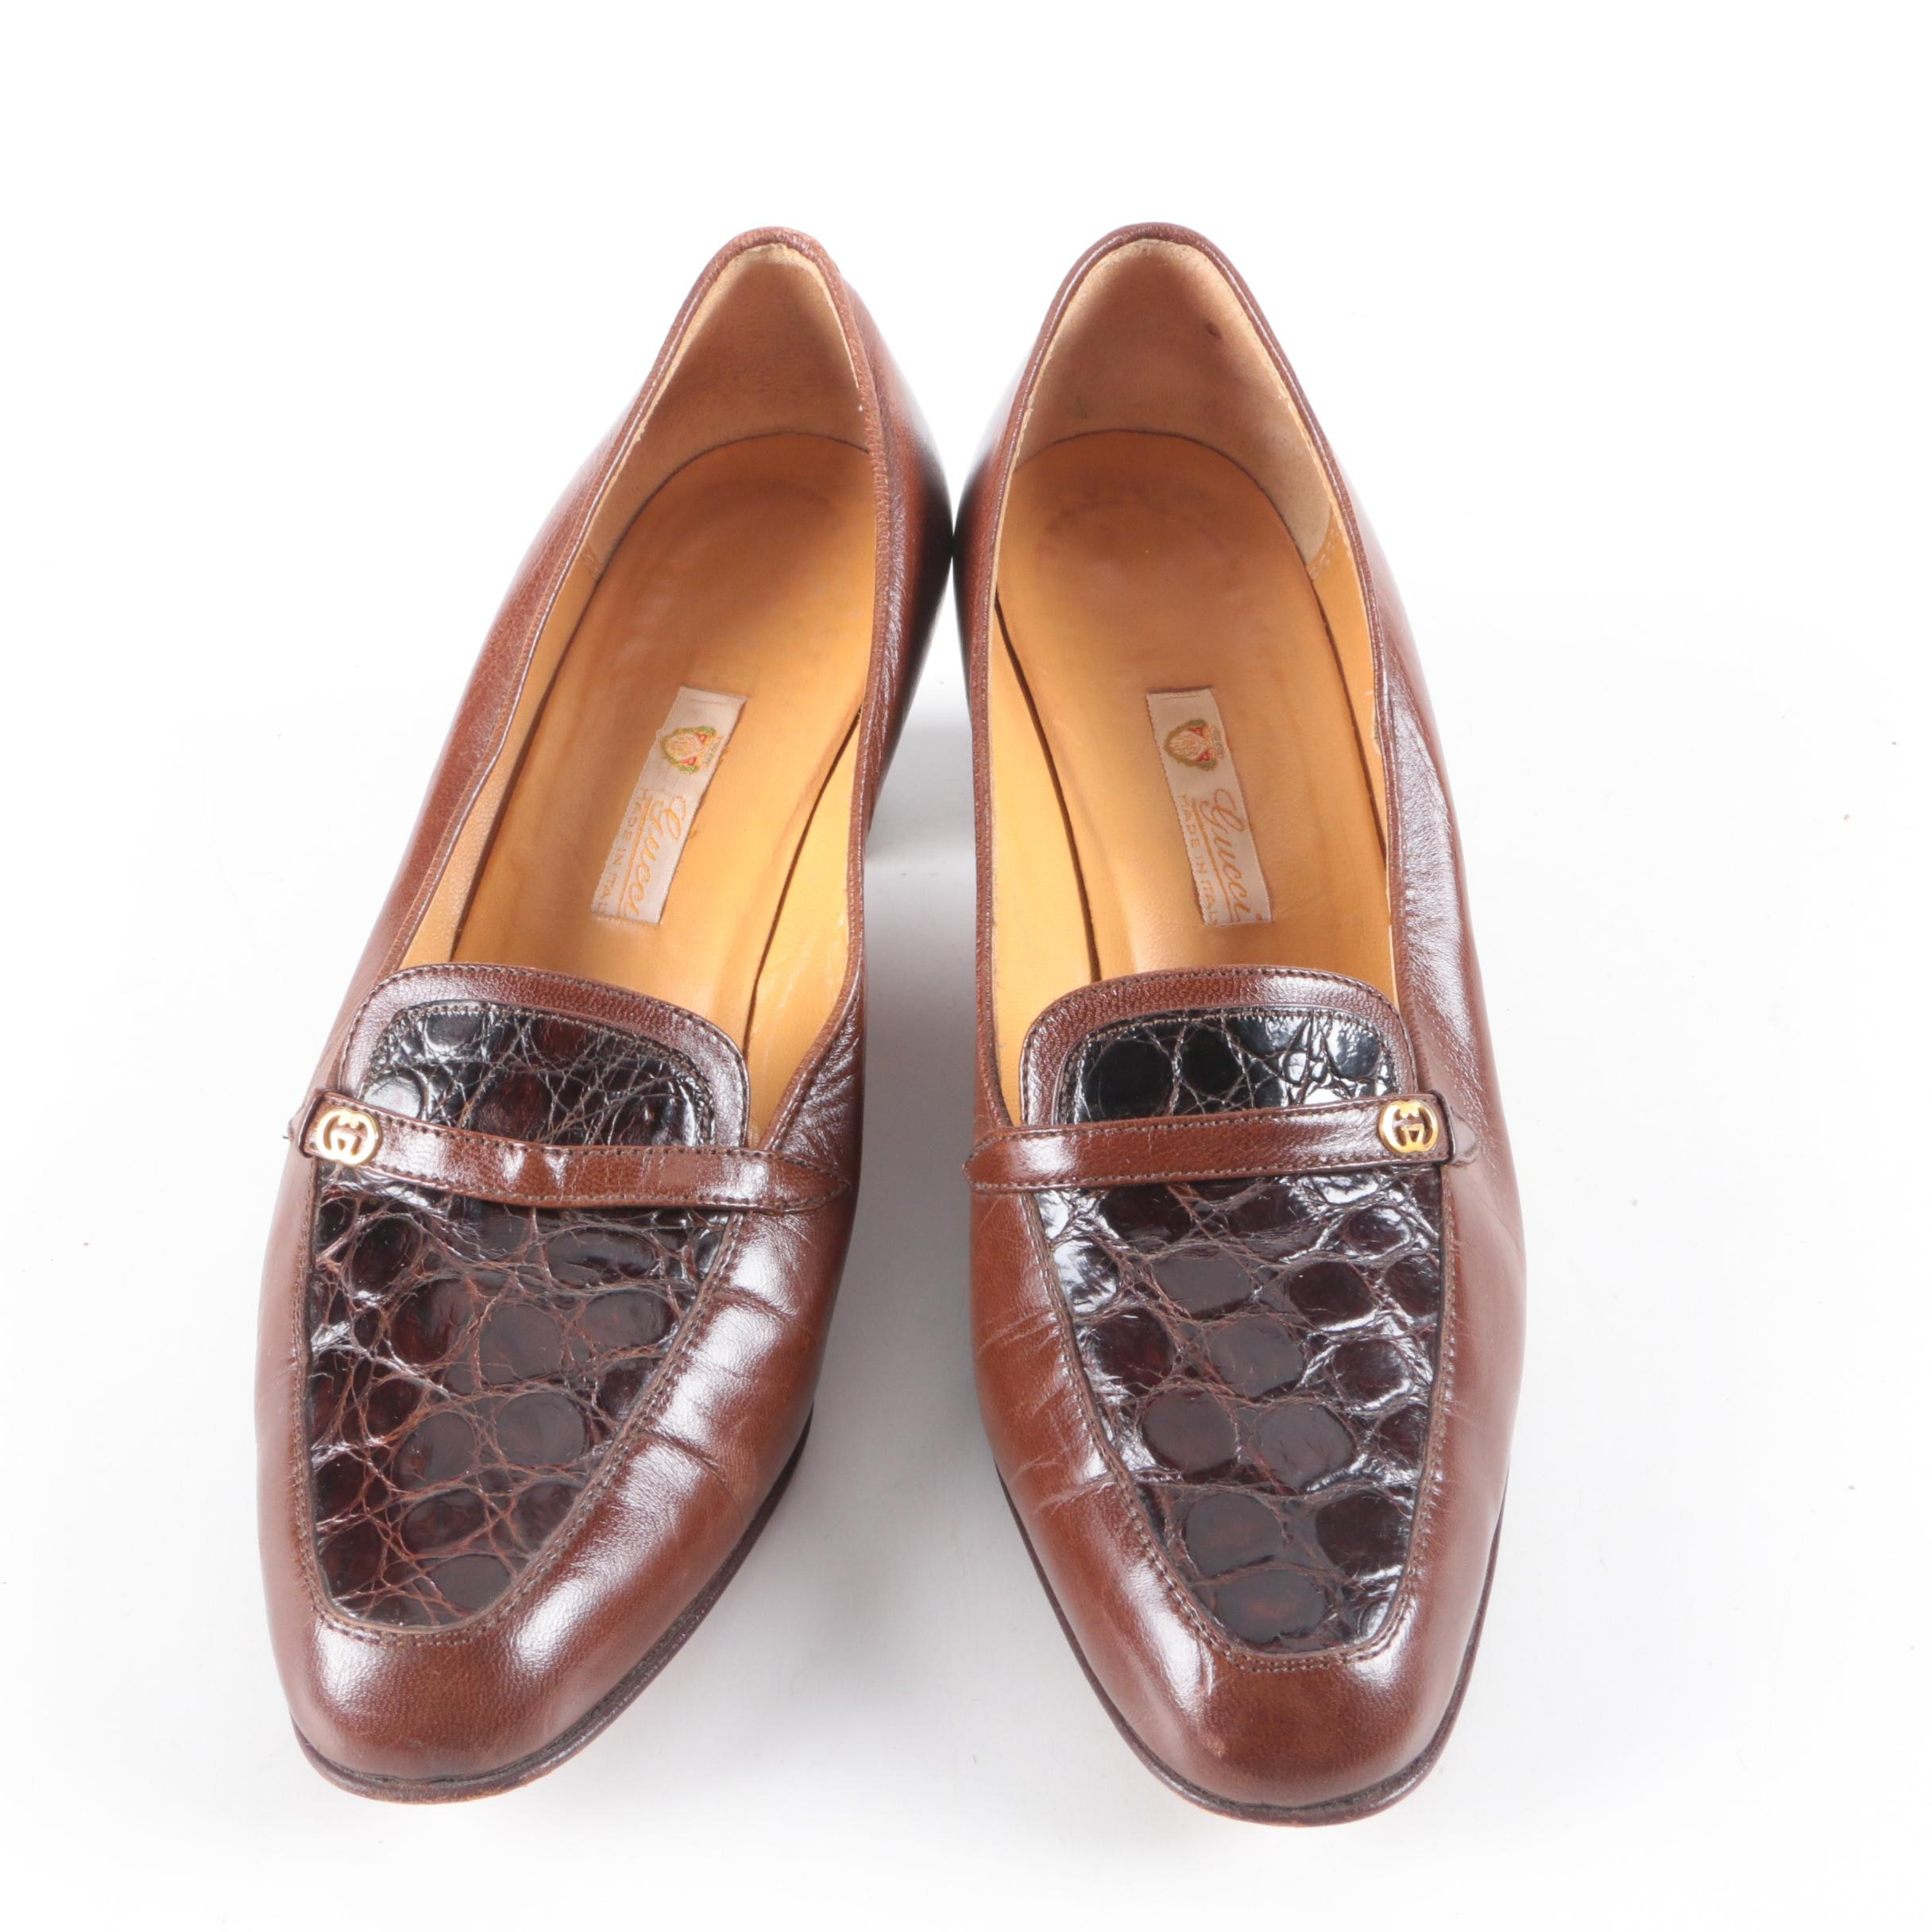 Circa 1960 Vintage Gucci Brown Leather and Alligator Skin High-Heeled Loafers